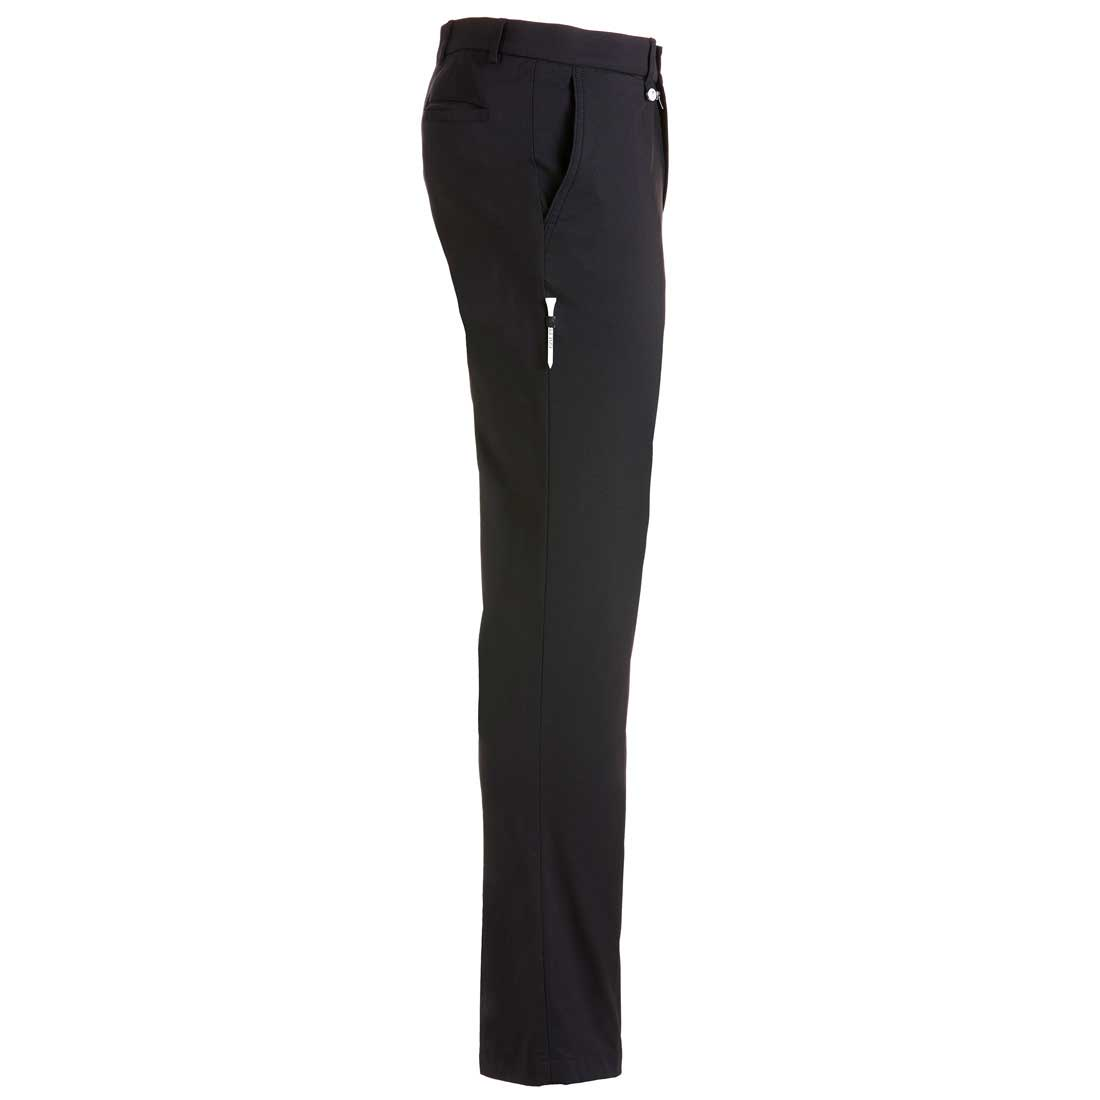 Warme Herren Techno Stretch Golfhose mit Cold Protection Funktion in Regular Fit